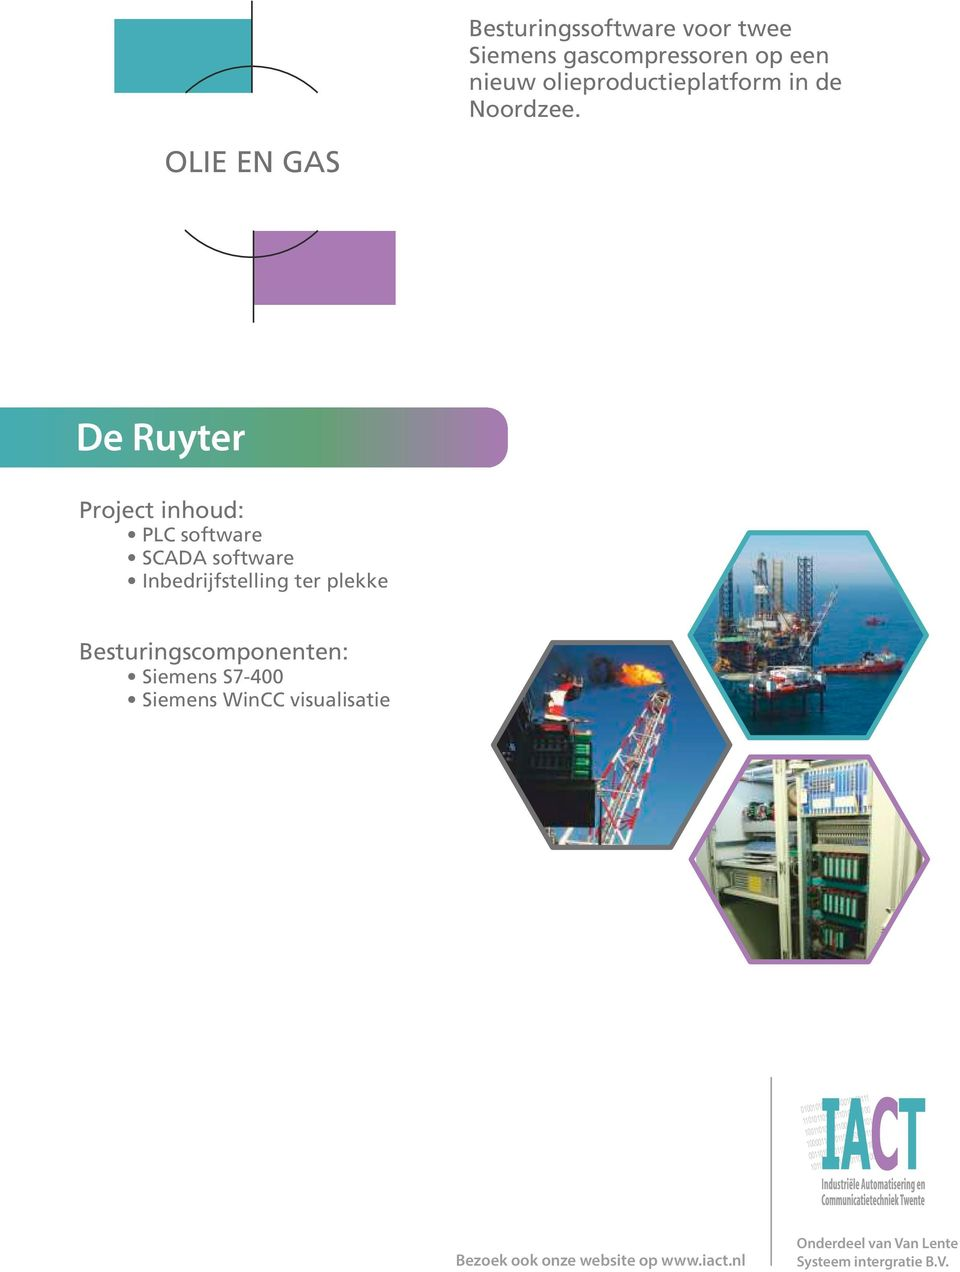 OLIE EN GAS De Ruyter PLC software SCADA software